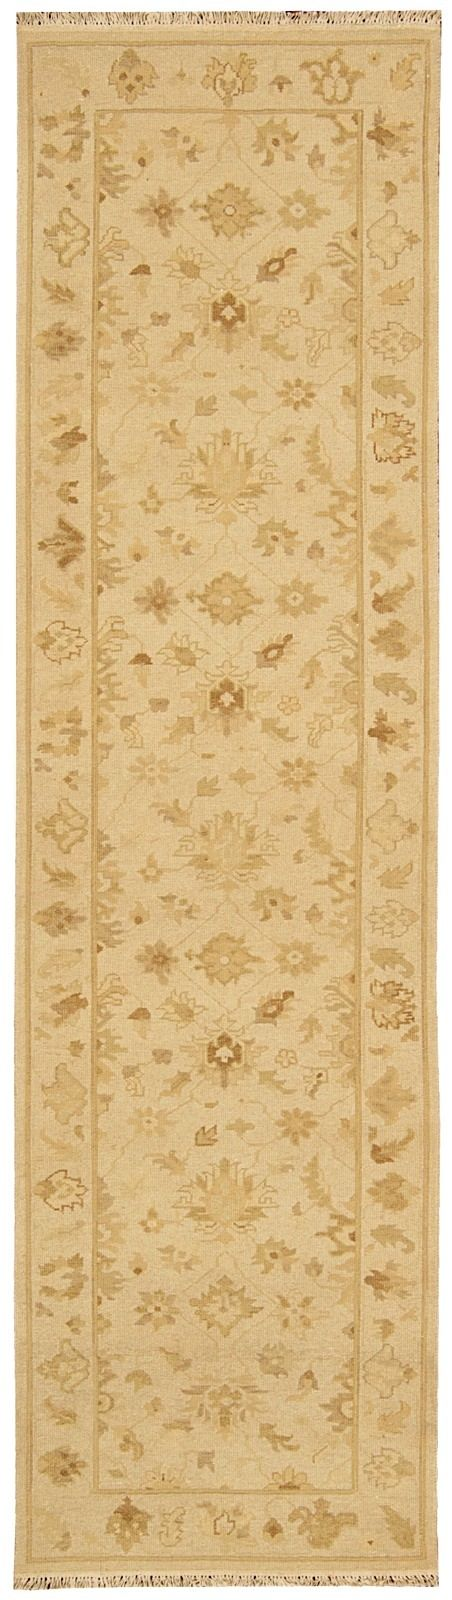 nourison nourmak encore traditional area rug collection